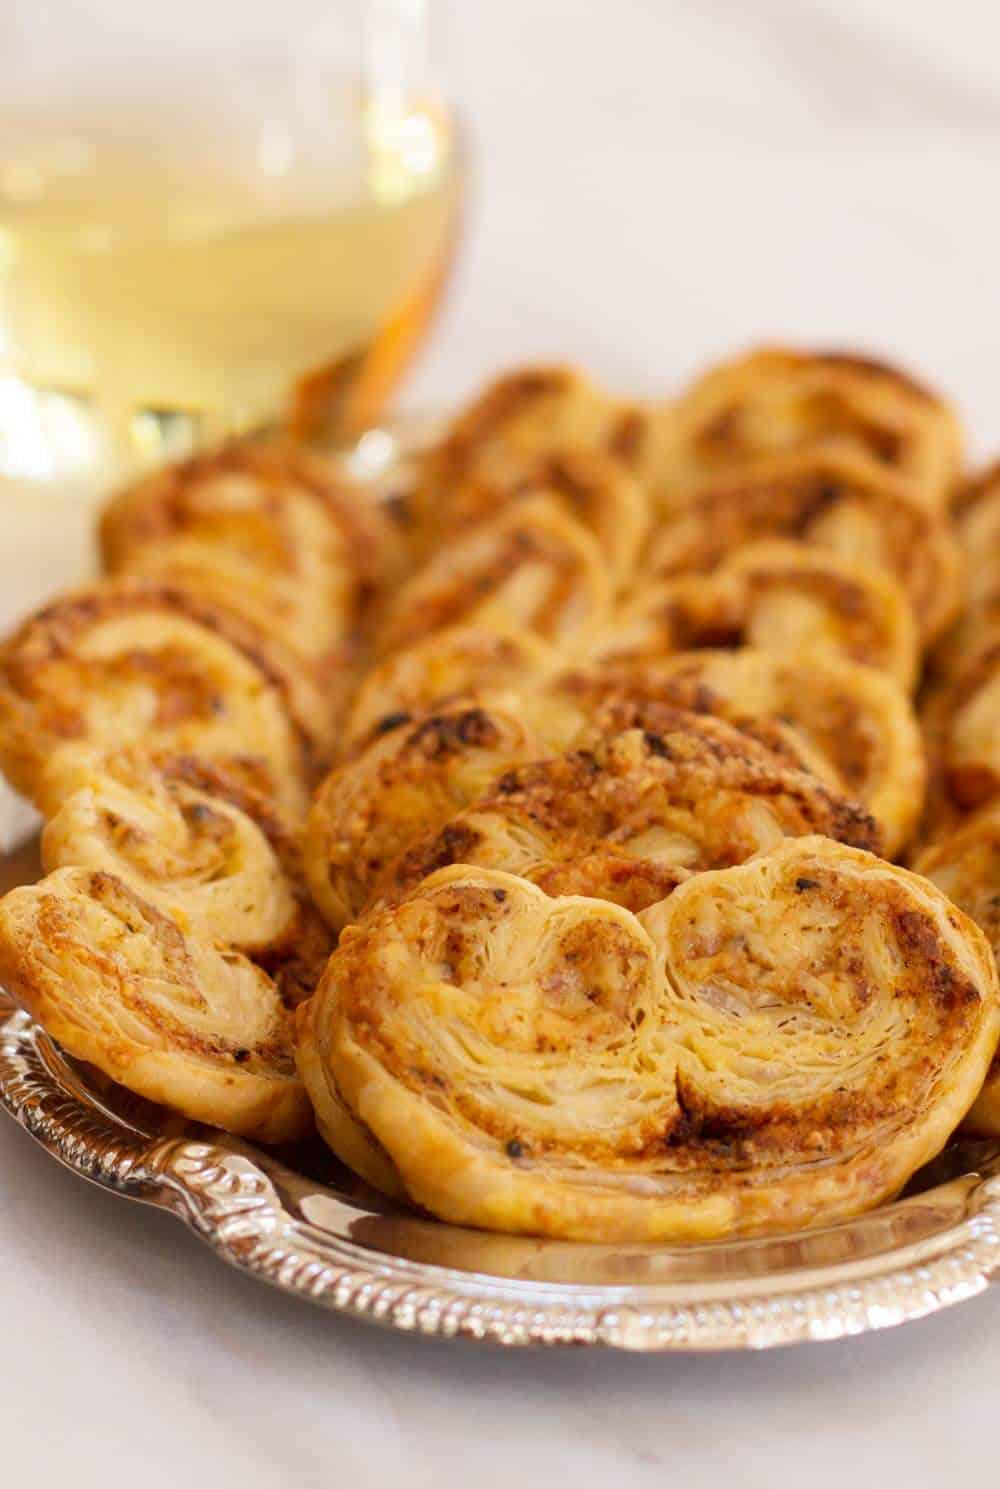 Spicy Cheddar Herb Palmiers on a tray with wine, ready for a party. | Mother Would Know